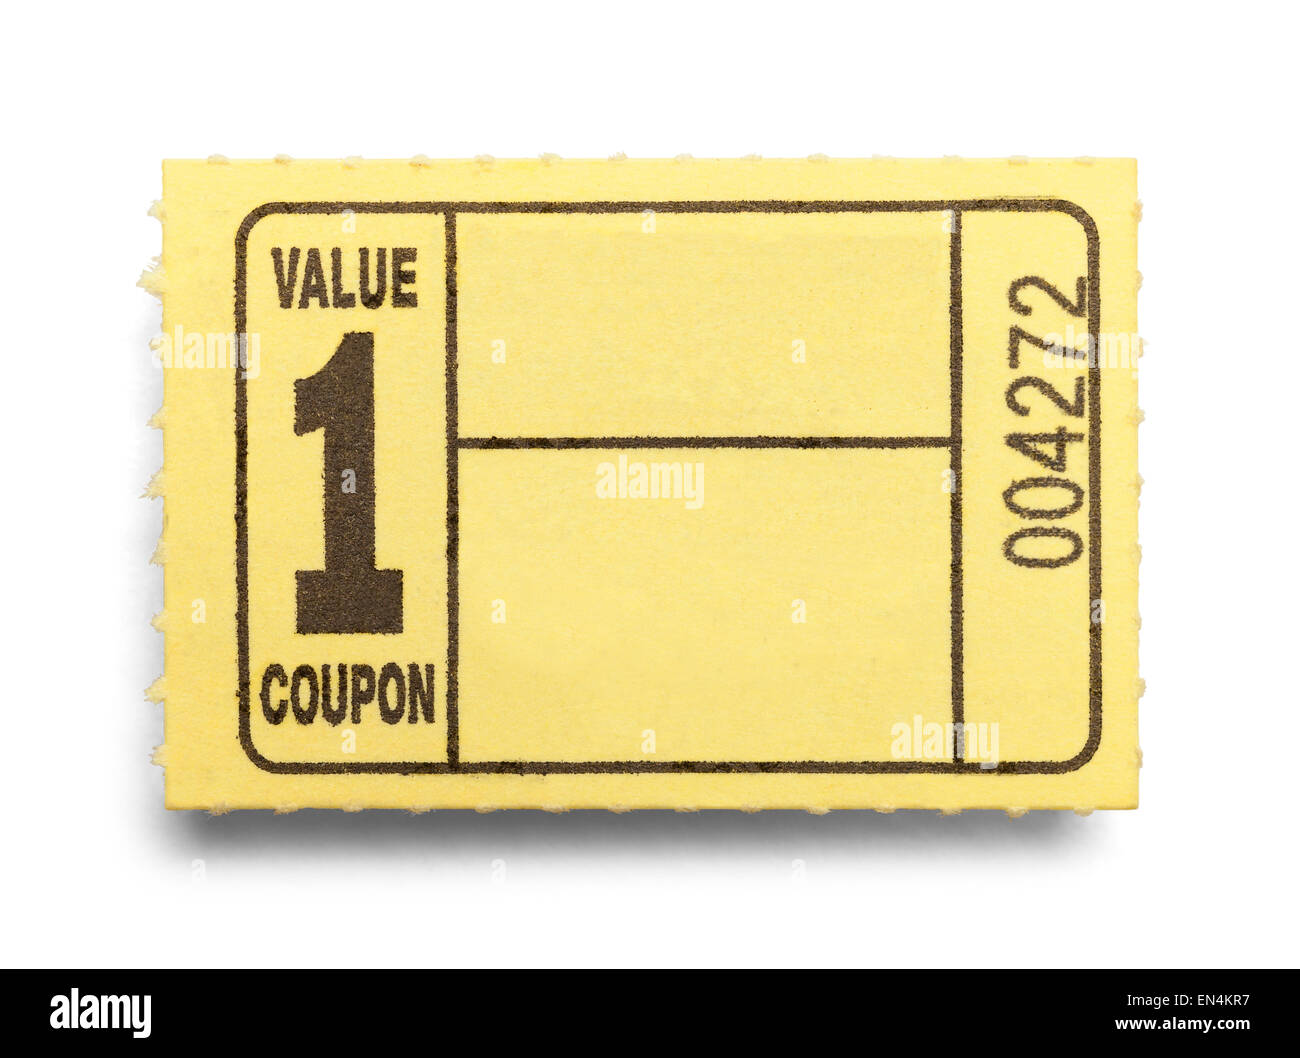 Small Yellow Coupon Ticket Isolated on a White Background. - Stock Image